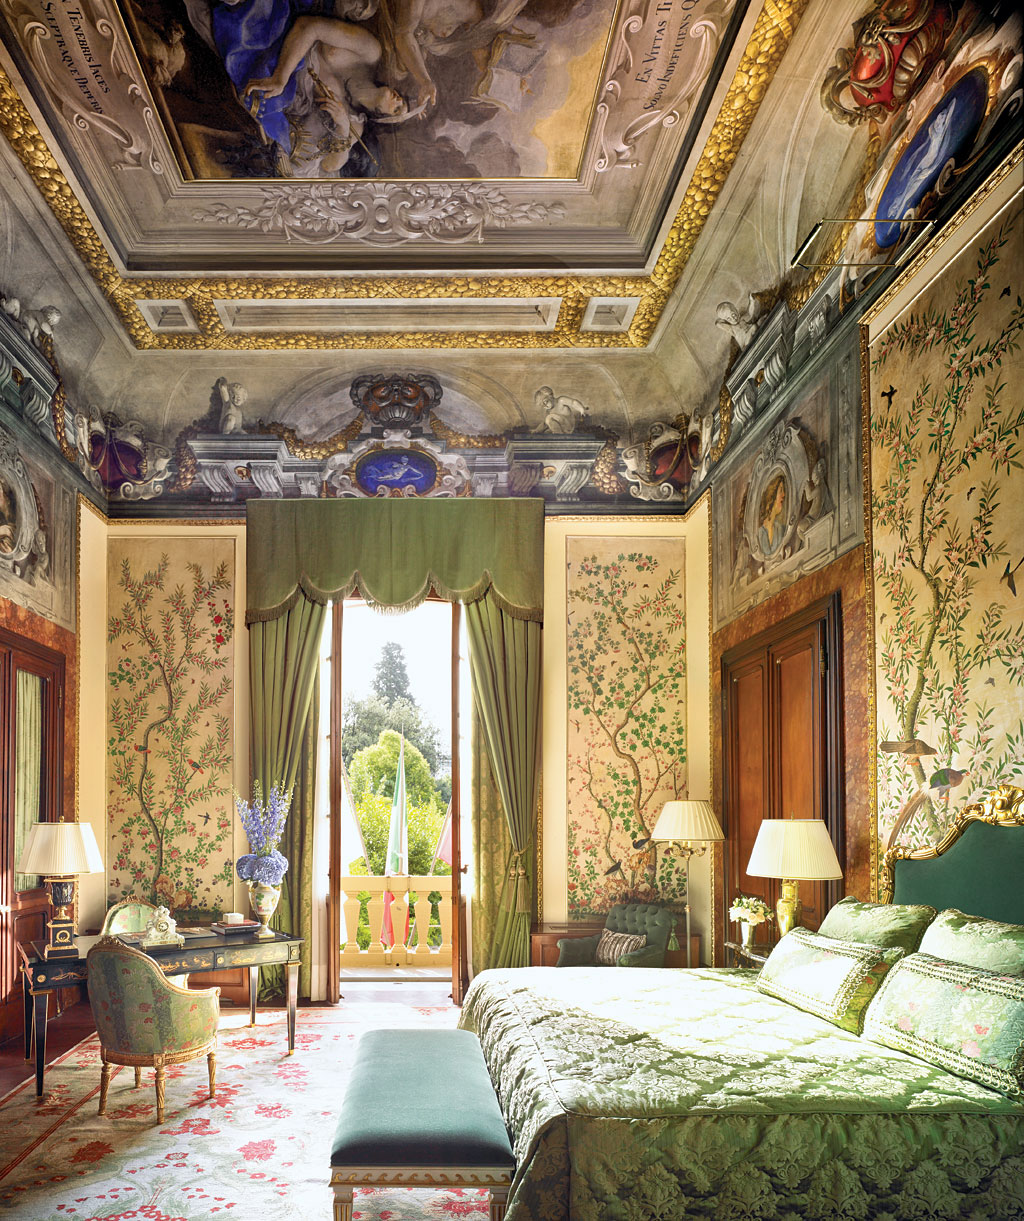 Best luxury hotels in florence top 10 ealuxe com for Hotel design florence